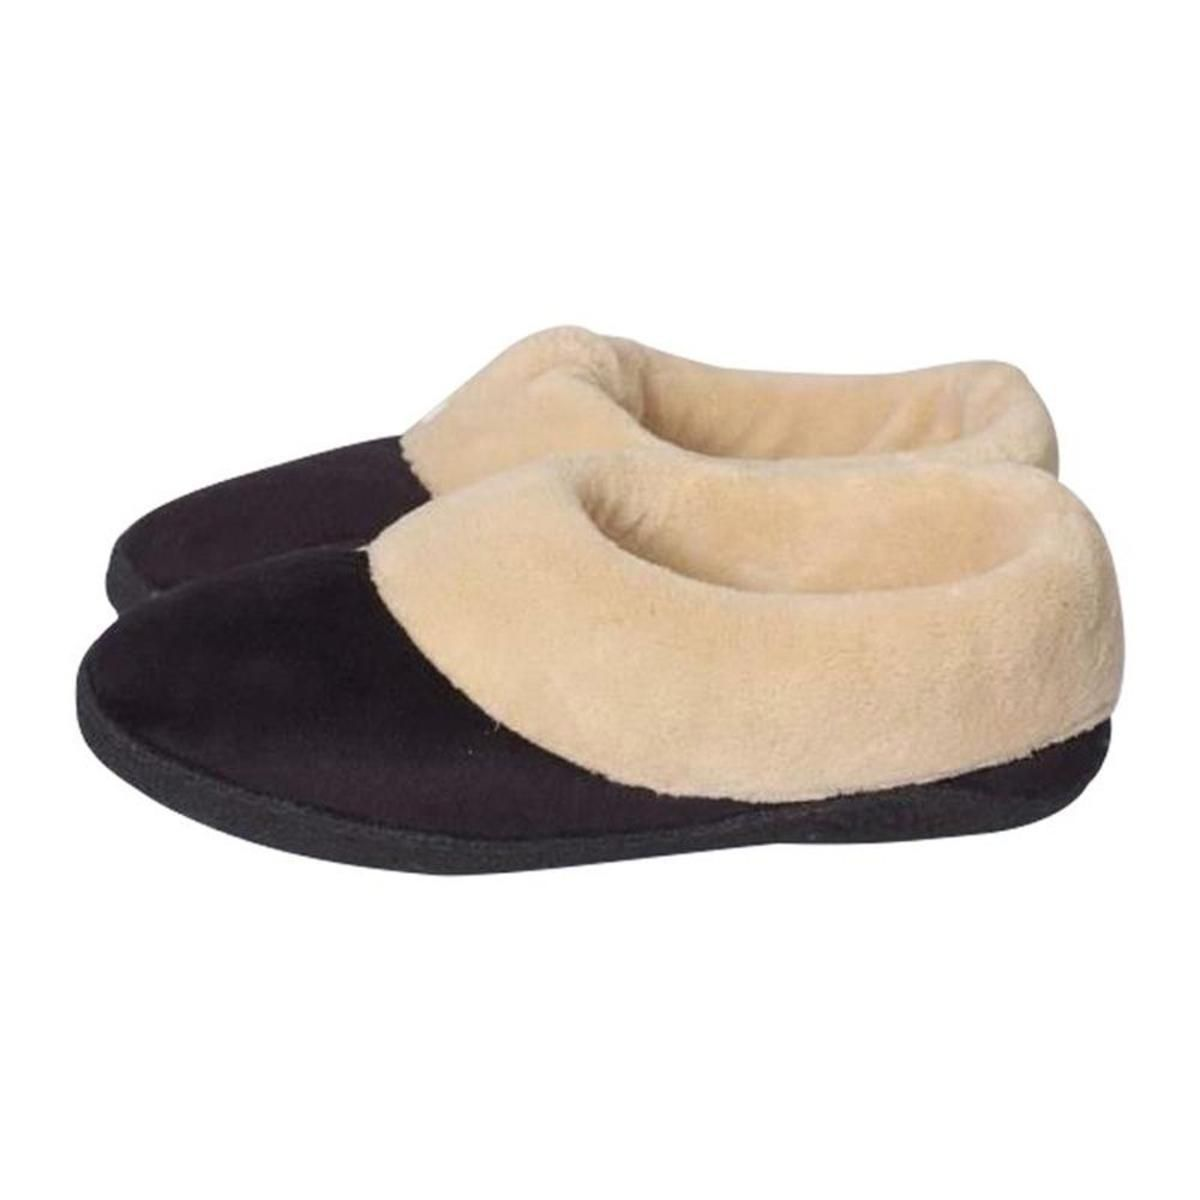 d742b596e96 Stay Warm Apparel Memory Foam Heated Slipper with Rechargeable Battery -  The Warming Store